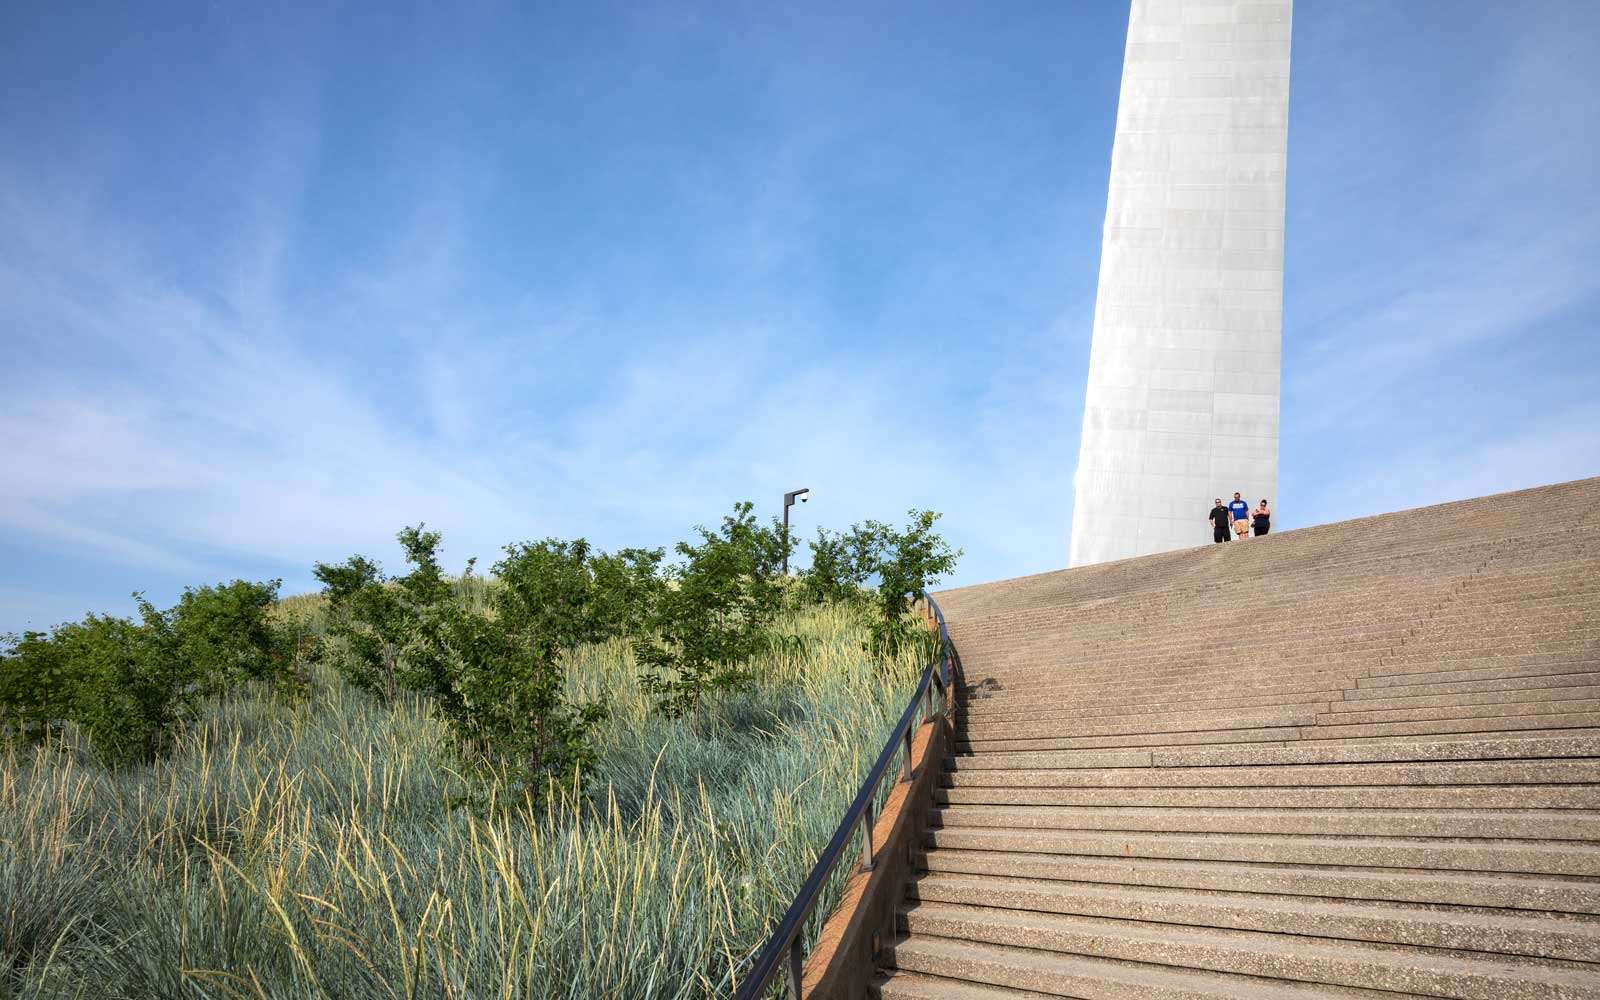 The St. Louis Gateway Arch Park Opens Today After a Five-year Renovation